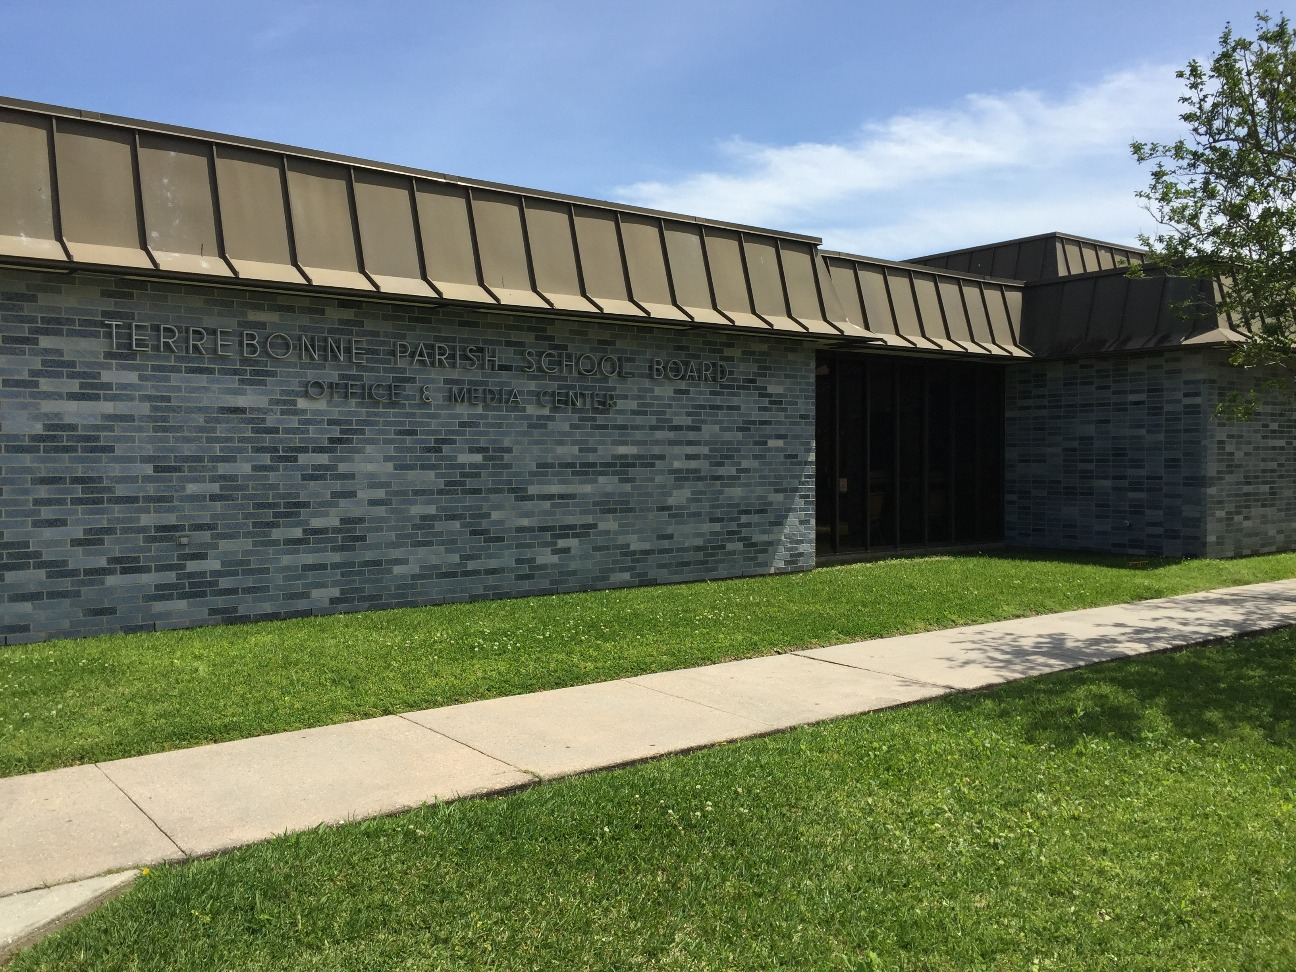 Front View of the Terrebonne Parish School Board Office and Media Center